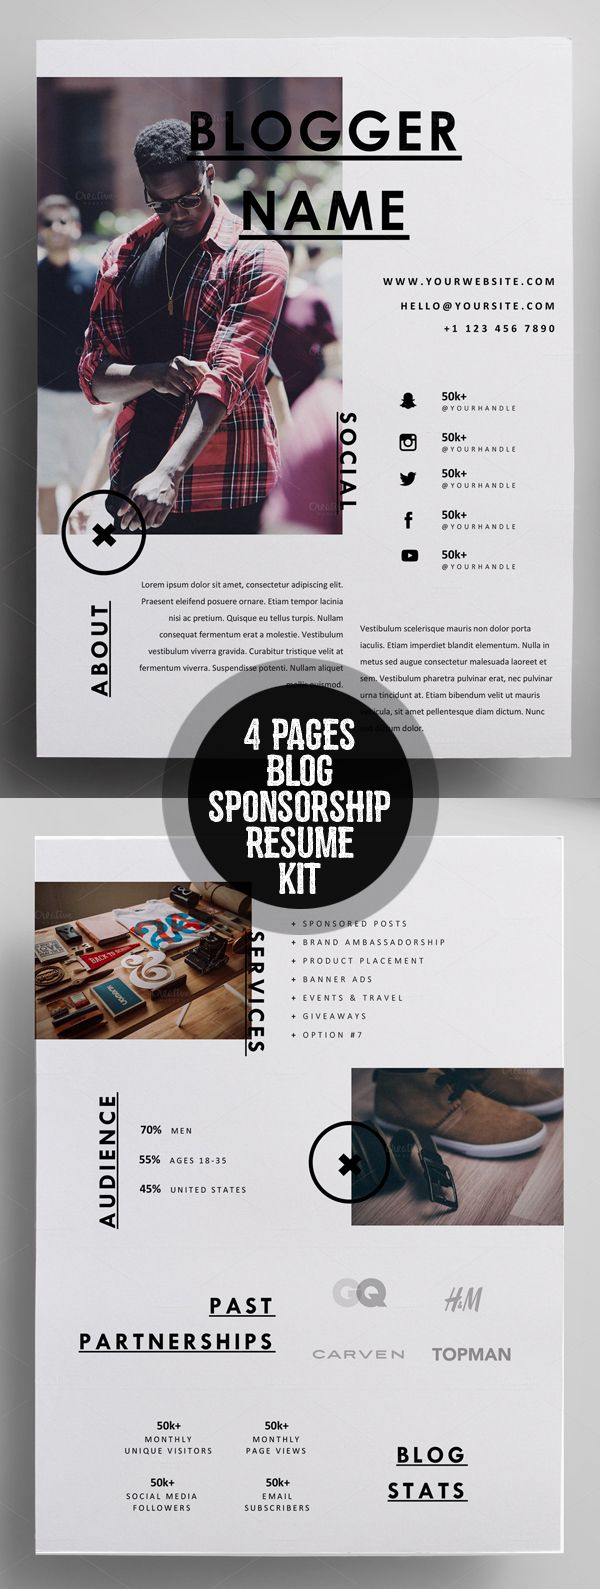 creative pages blog sponsorship kit resume template print creative 4 pages blog sponsorship kit resume template